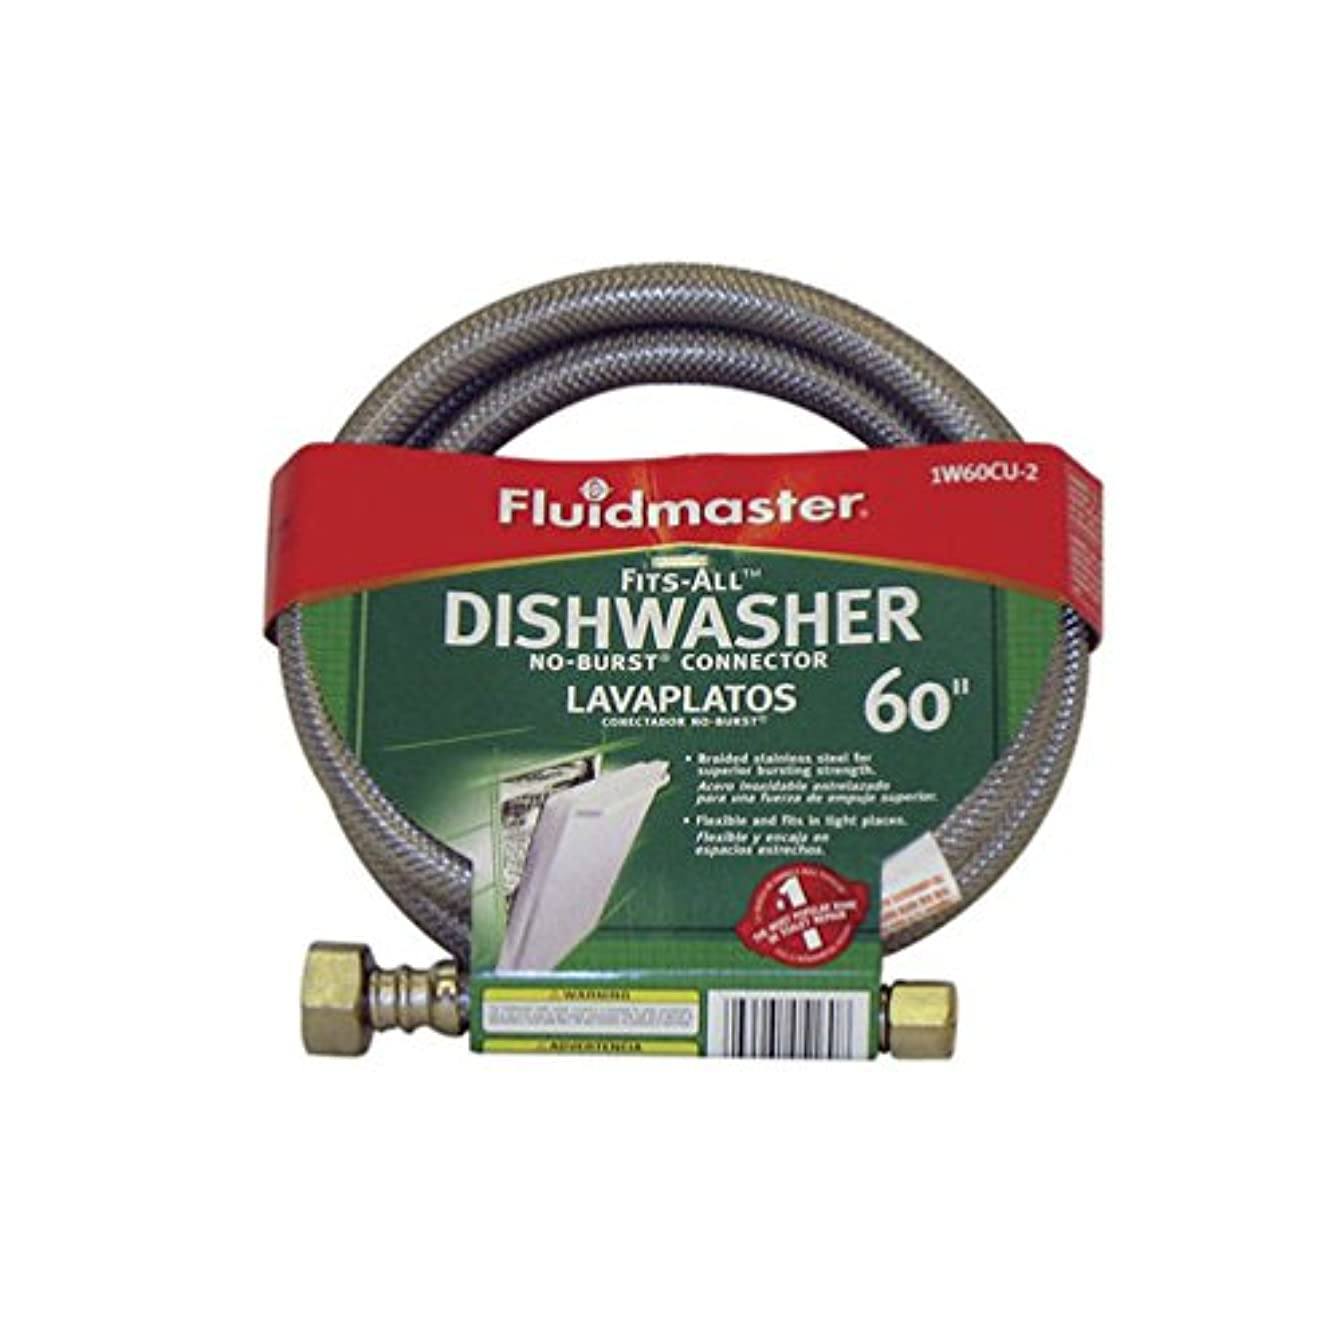 Fluidmaster 1W60CU No-Burst Fits-All Dishwasher Connector California Models